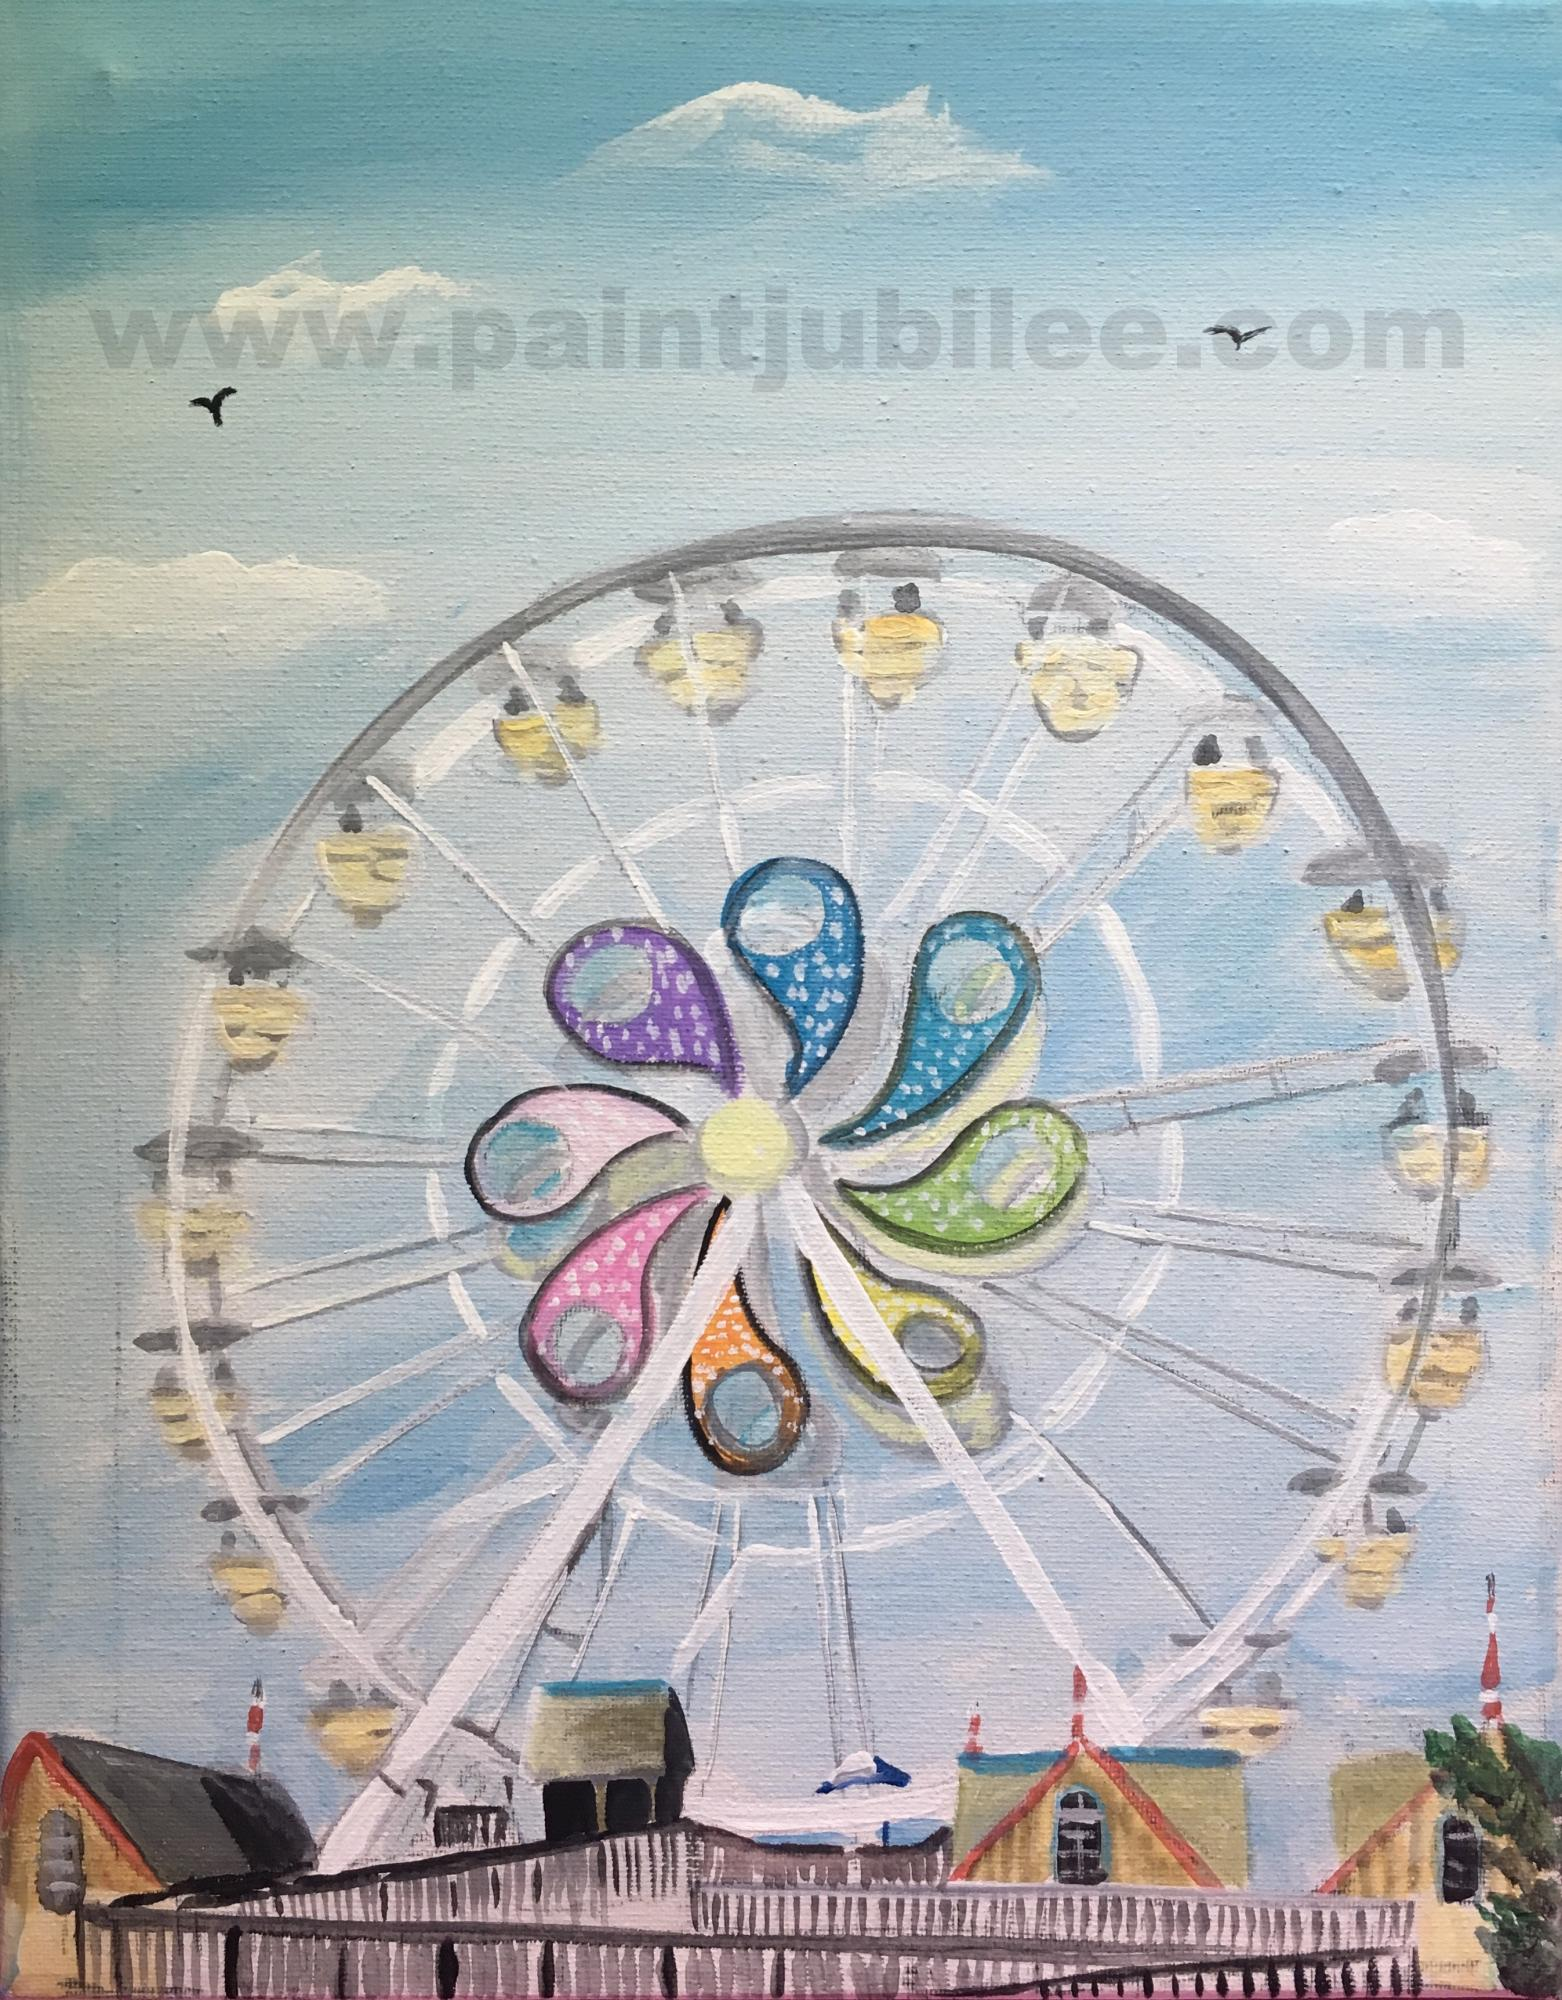 hersheyparkferris_wheel.jpg